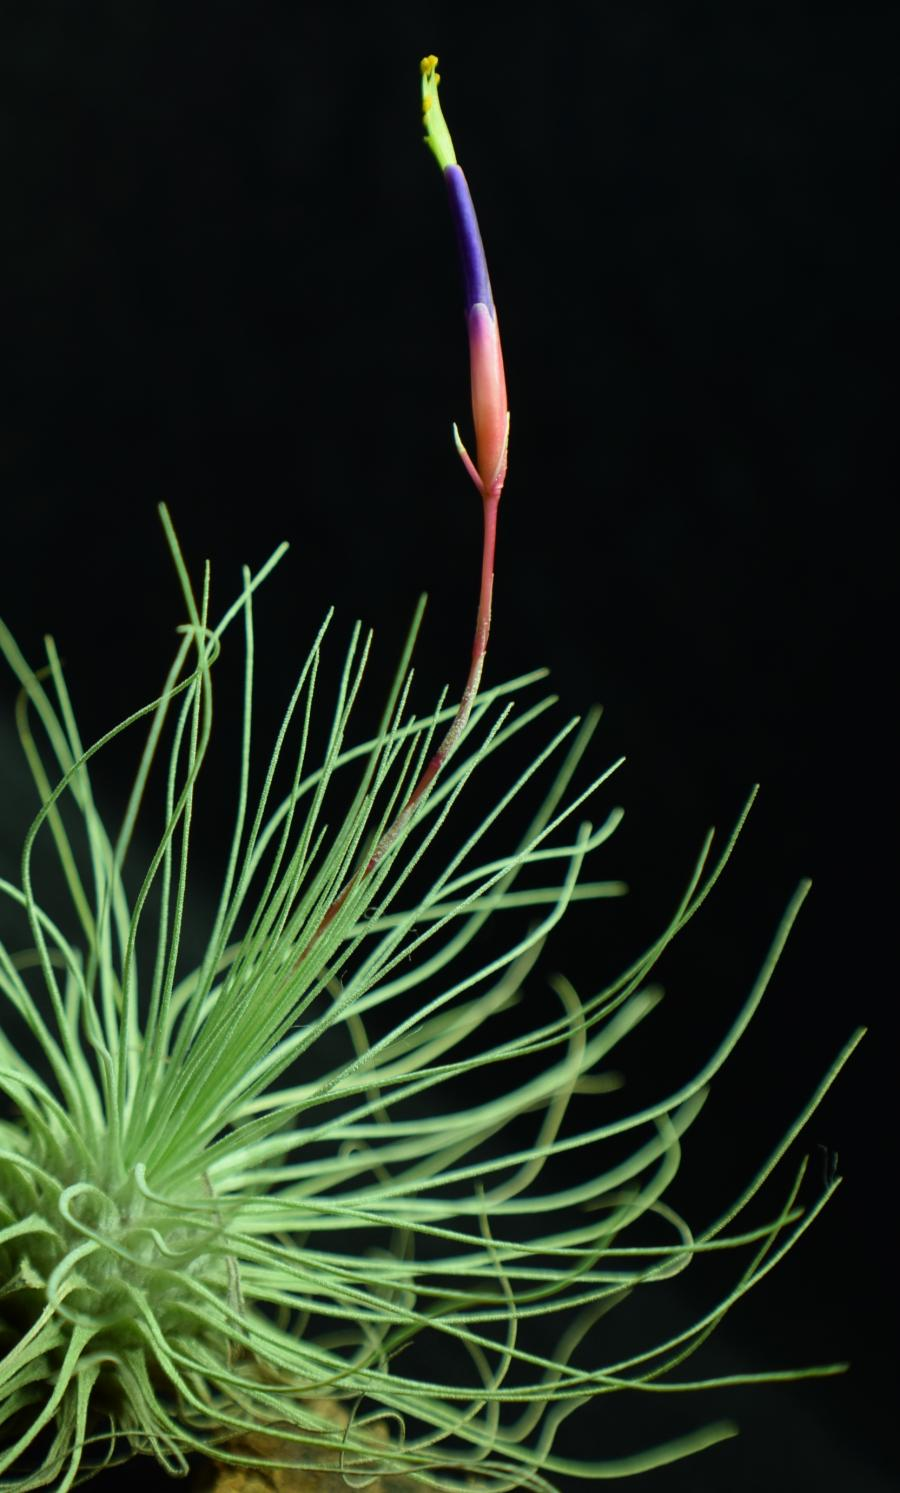 Air plant Tillandsia fuchsii var. gracilis in bloom.